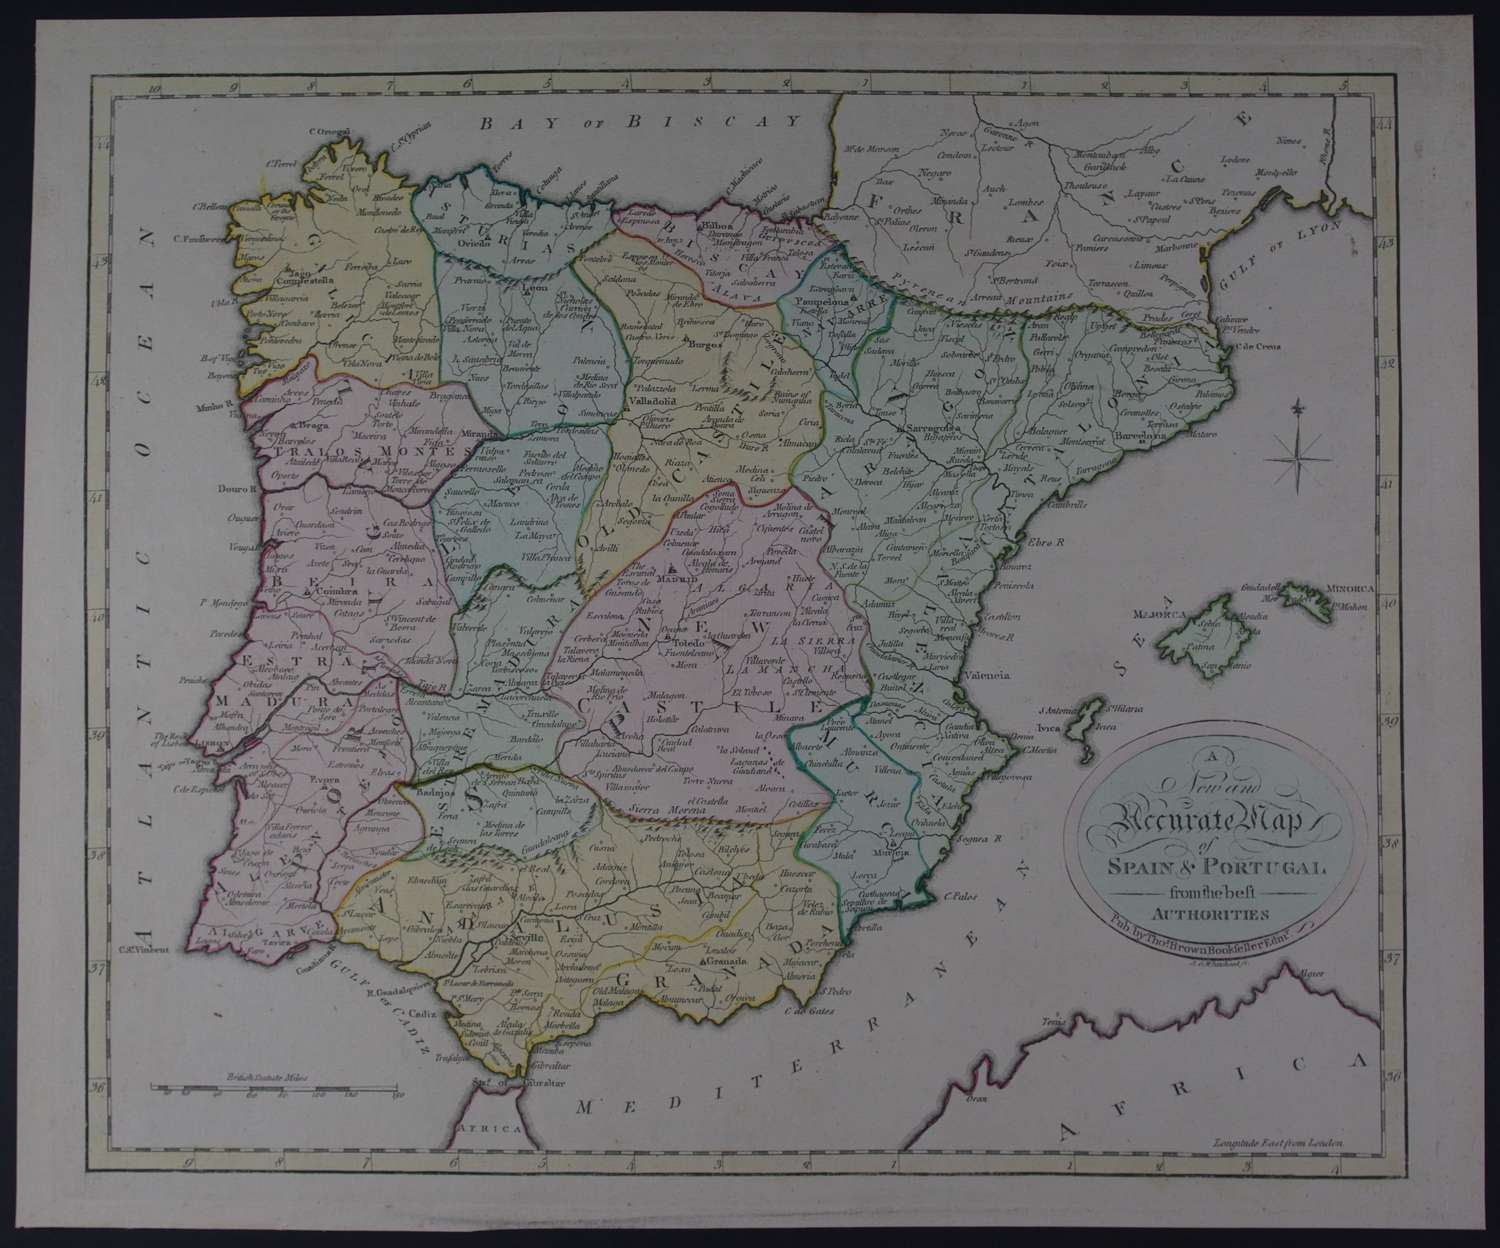 A New and Accurate Map of Spain & Portugal by Thomas Brown